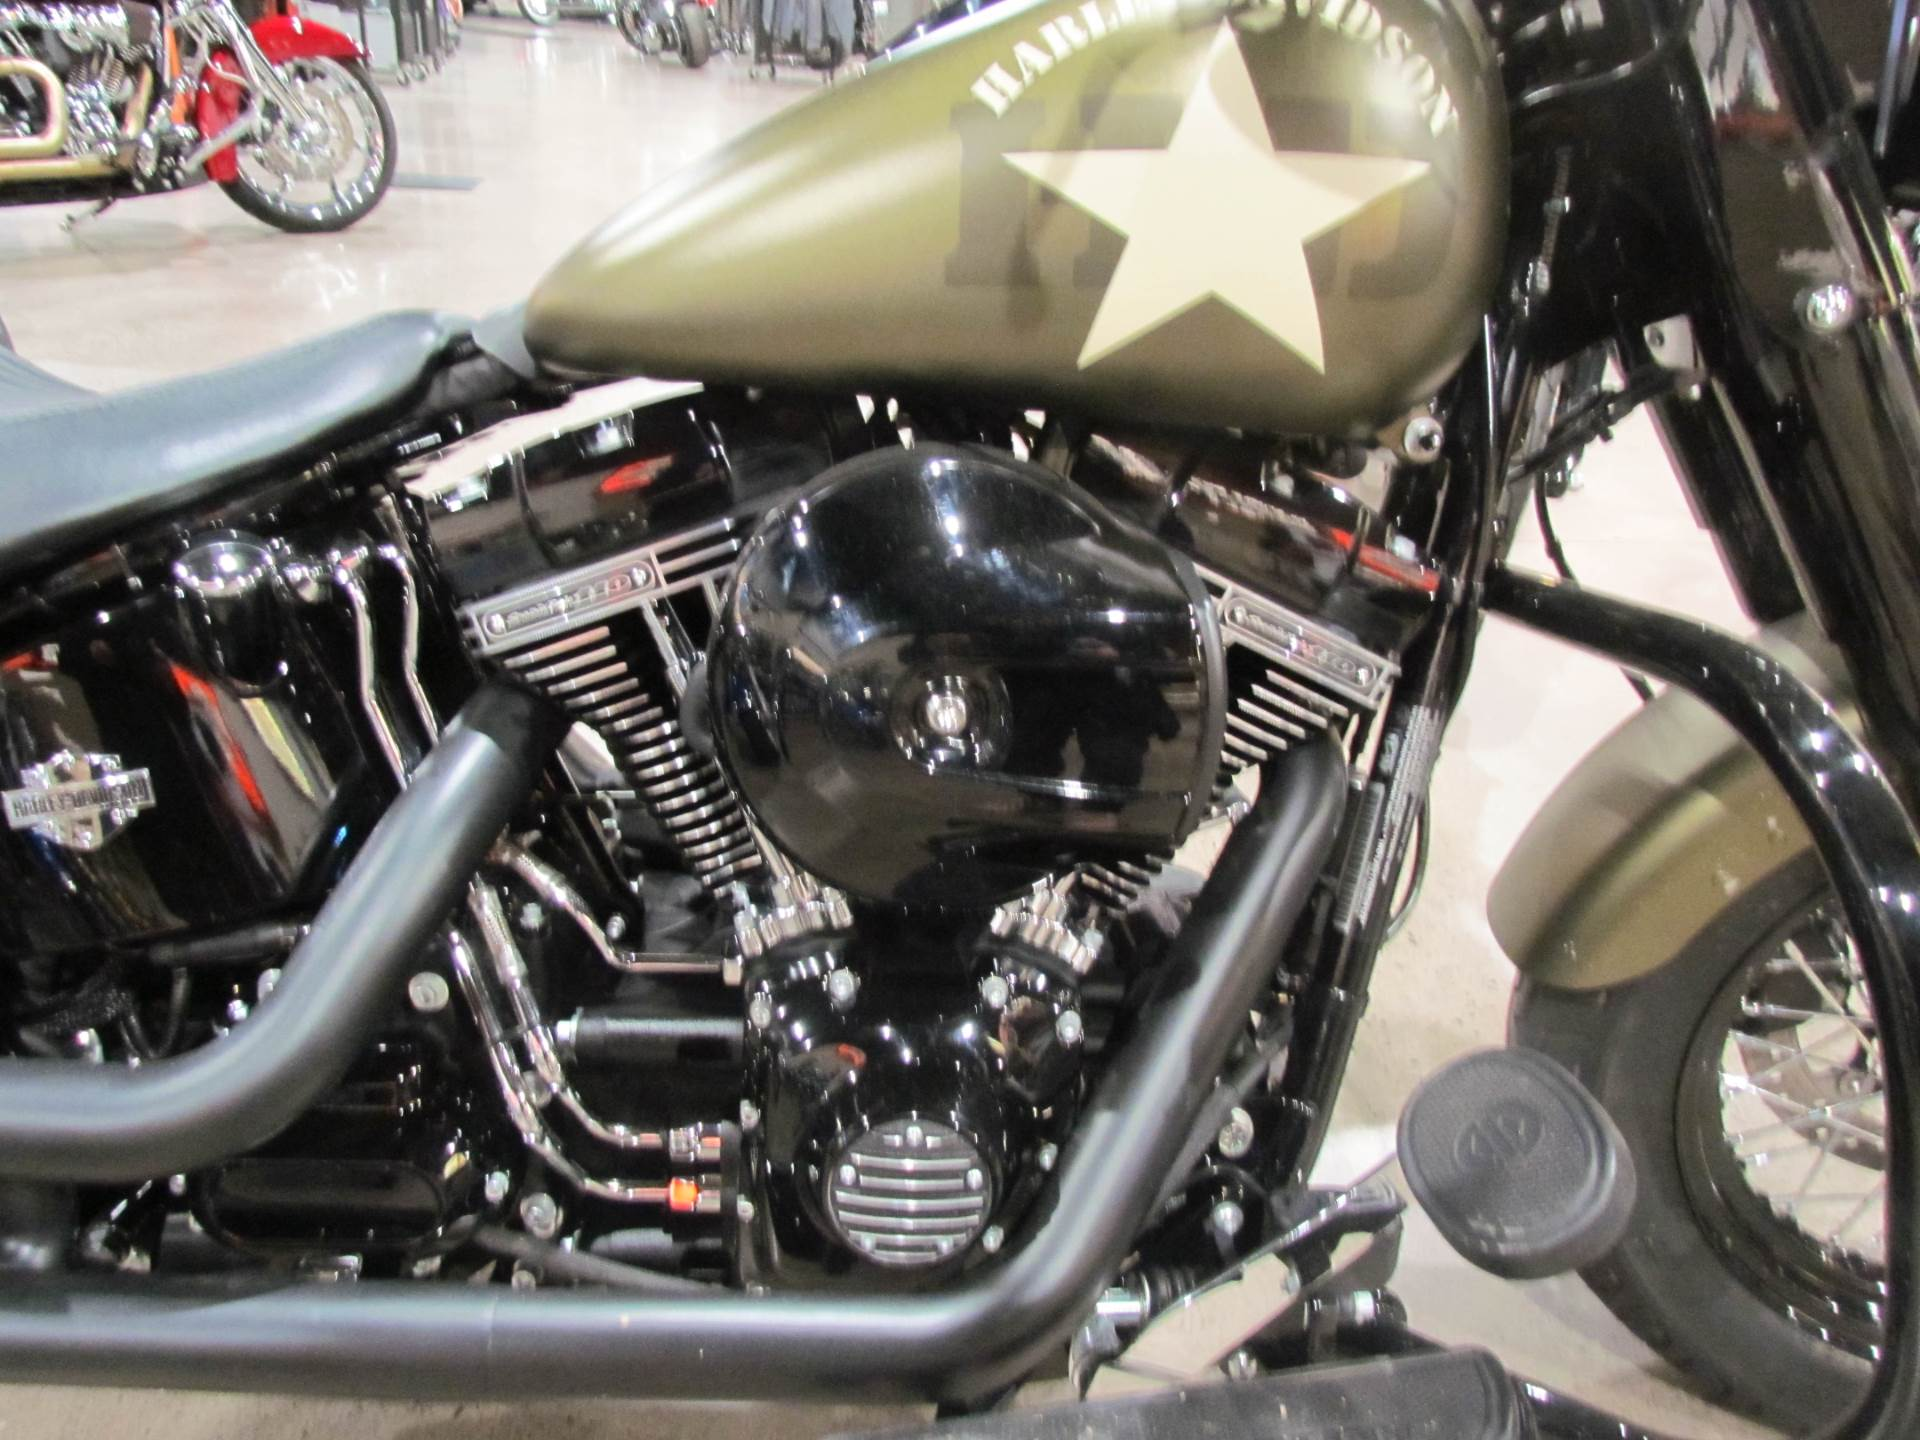 Black Smooth Handlebar Clamp Cover,for Harley Davidson,by V-Twin